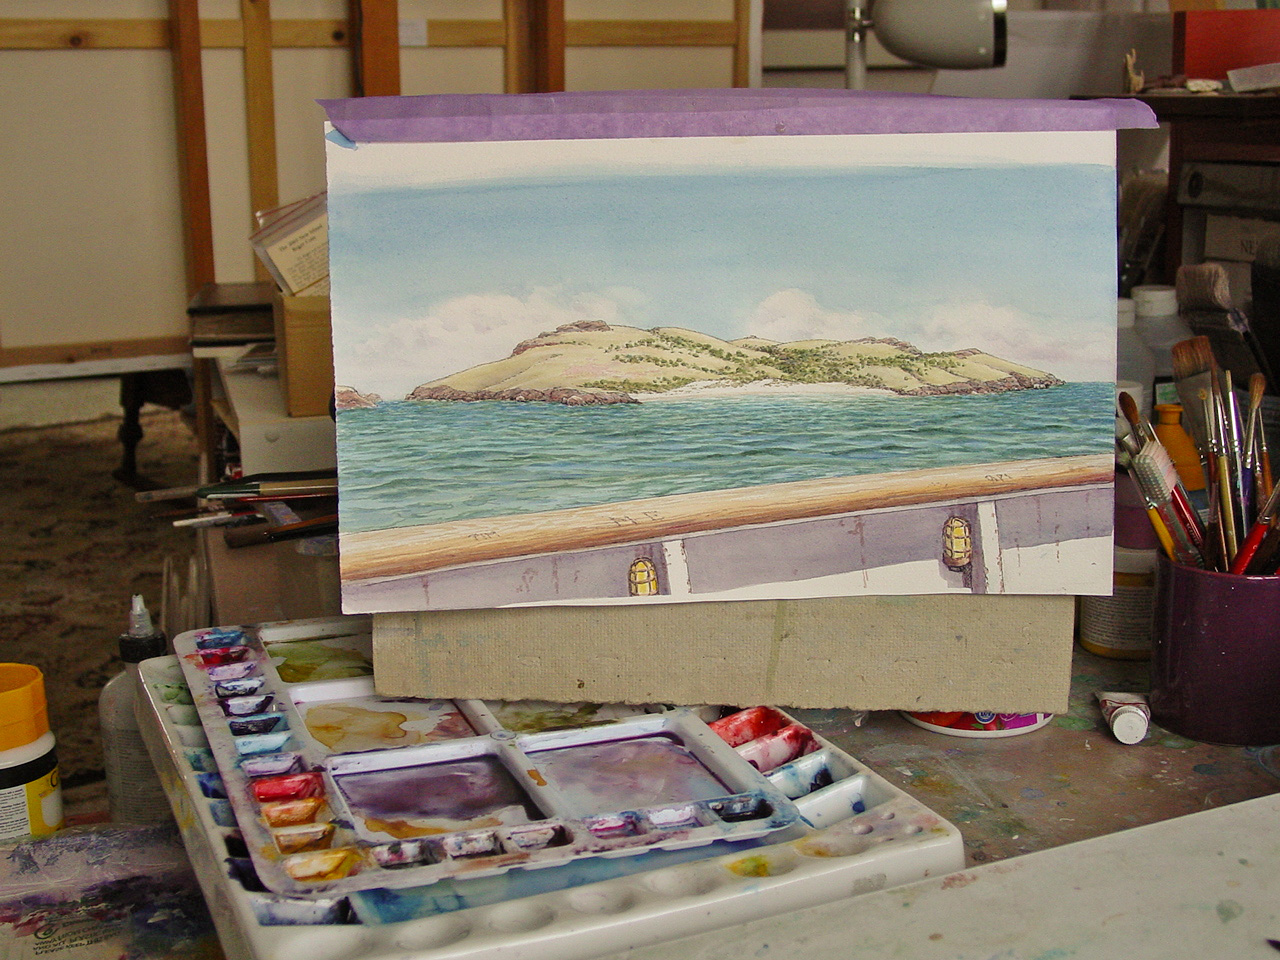 The painting I'll do will be some sort of a seascape-landscape in watercolor.